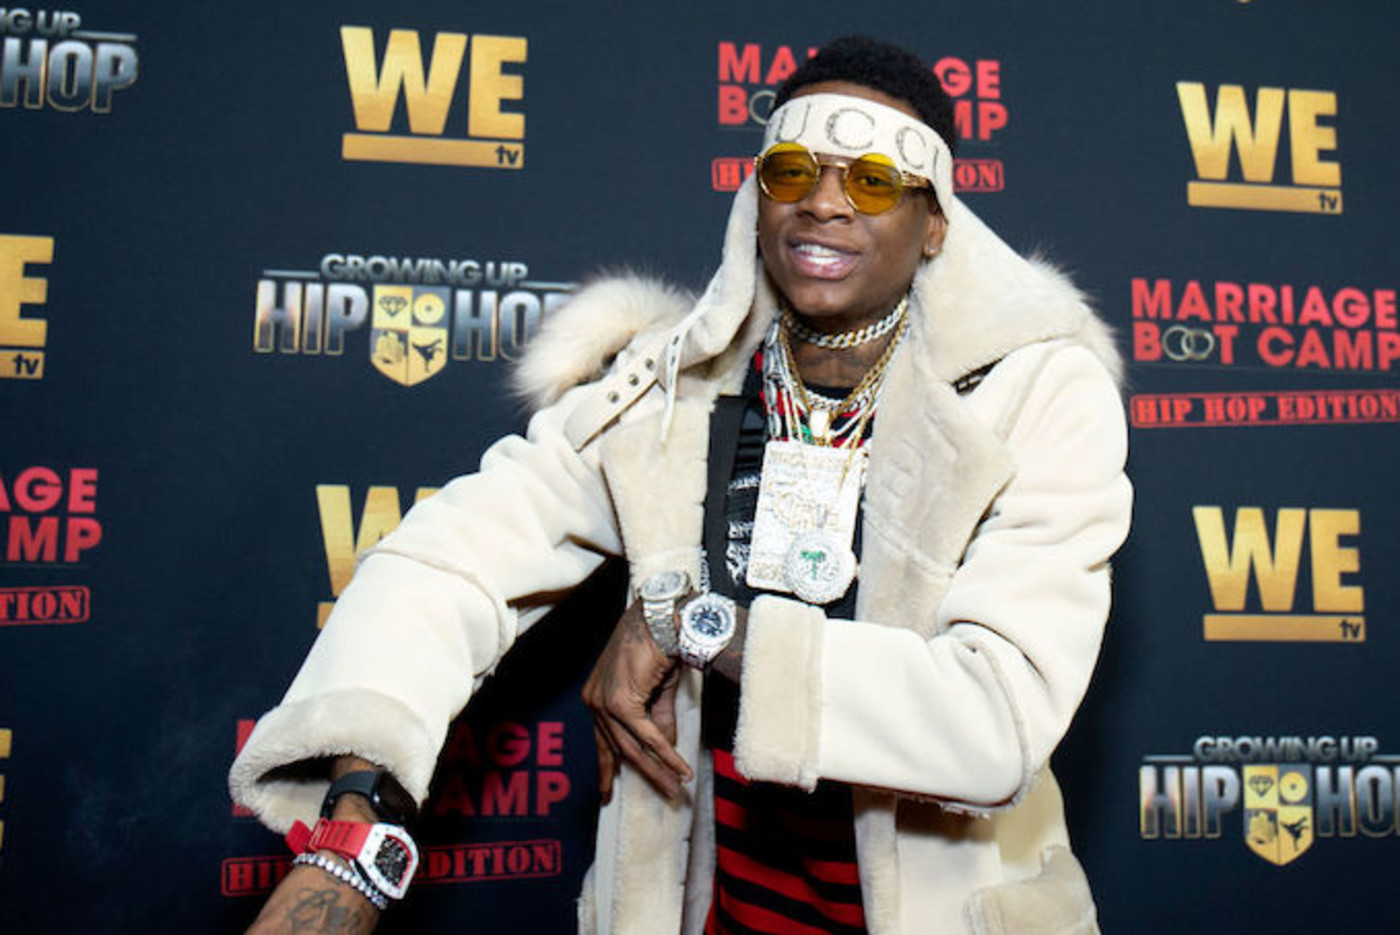 This is a picture of Soulja Boy.